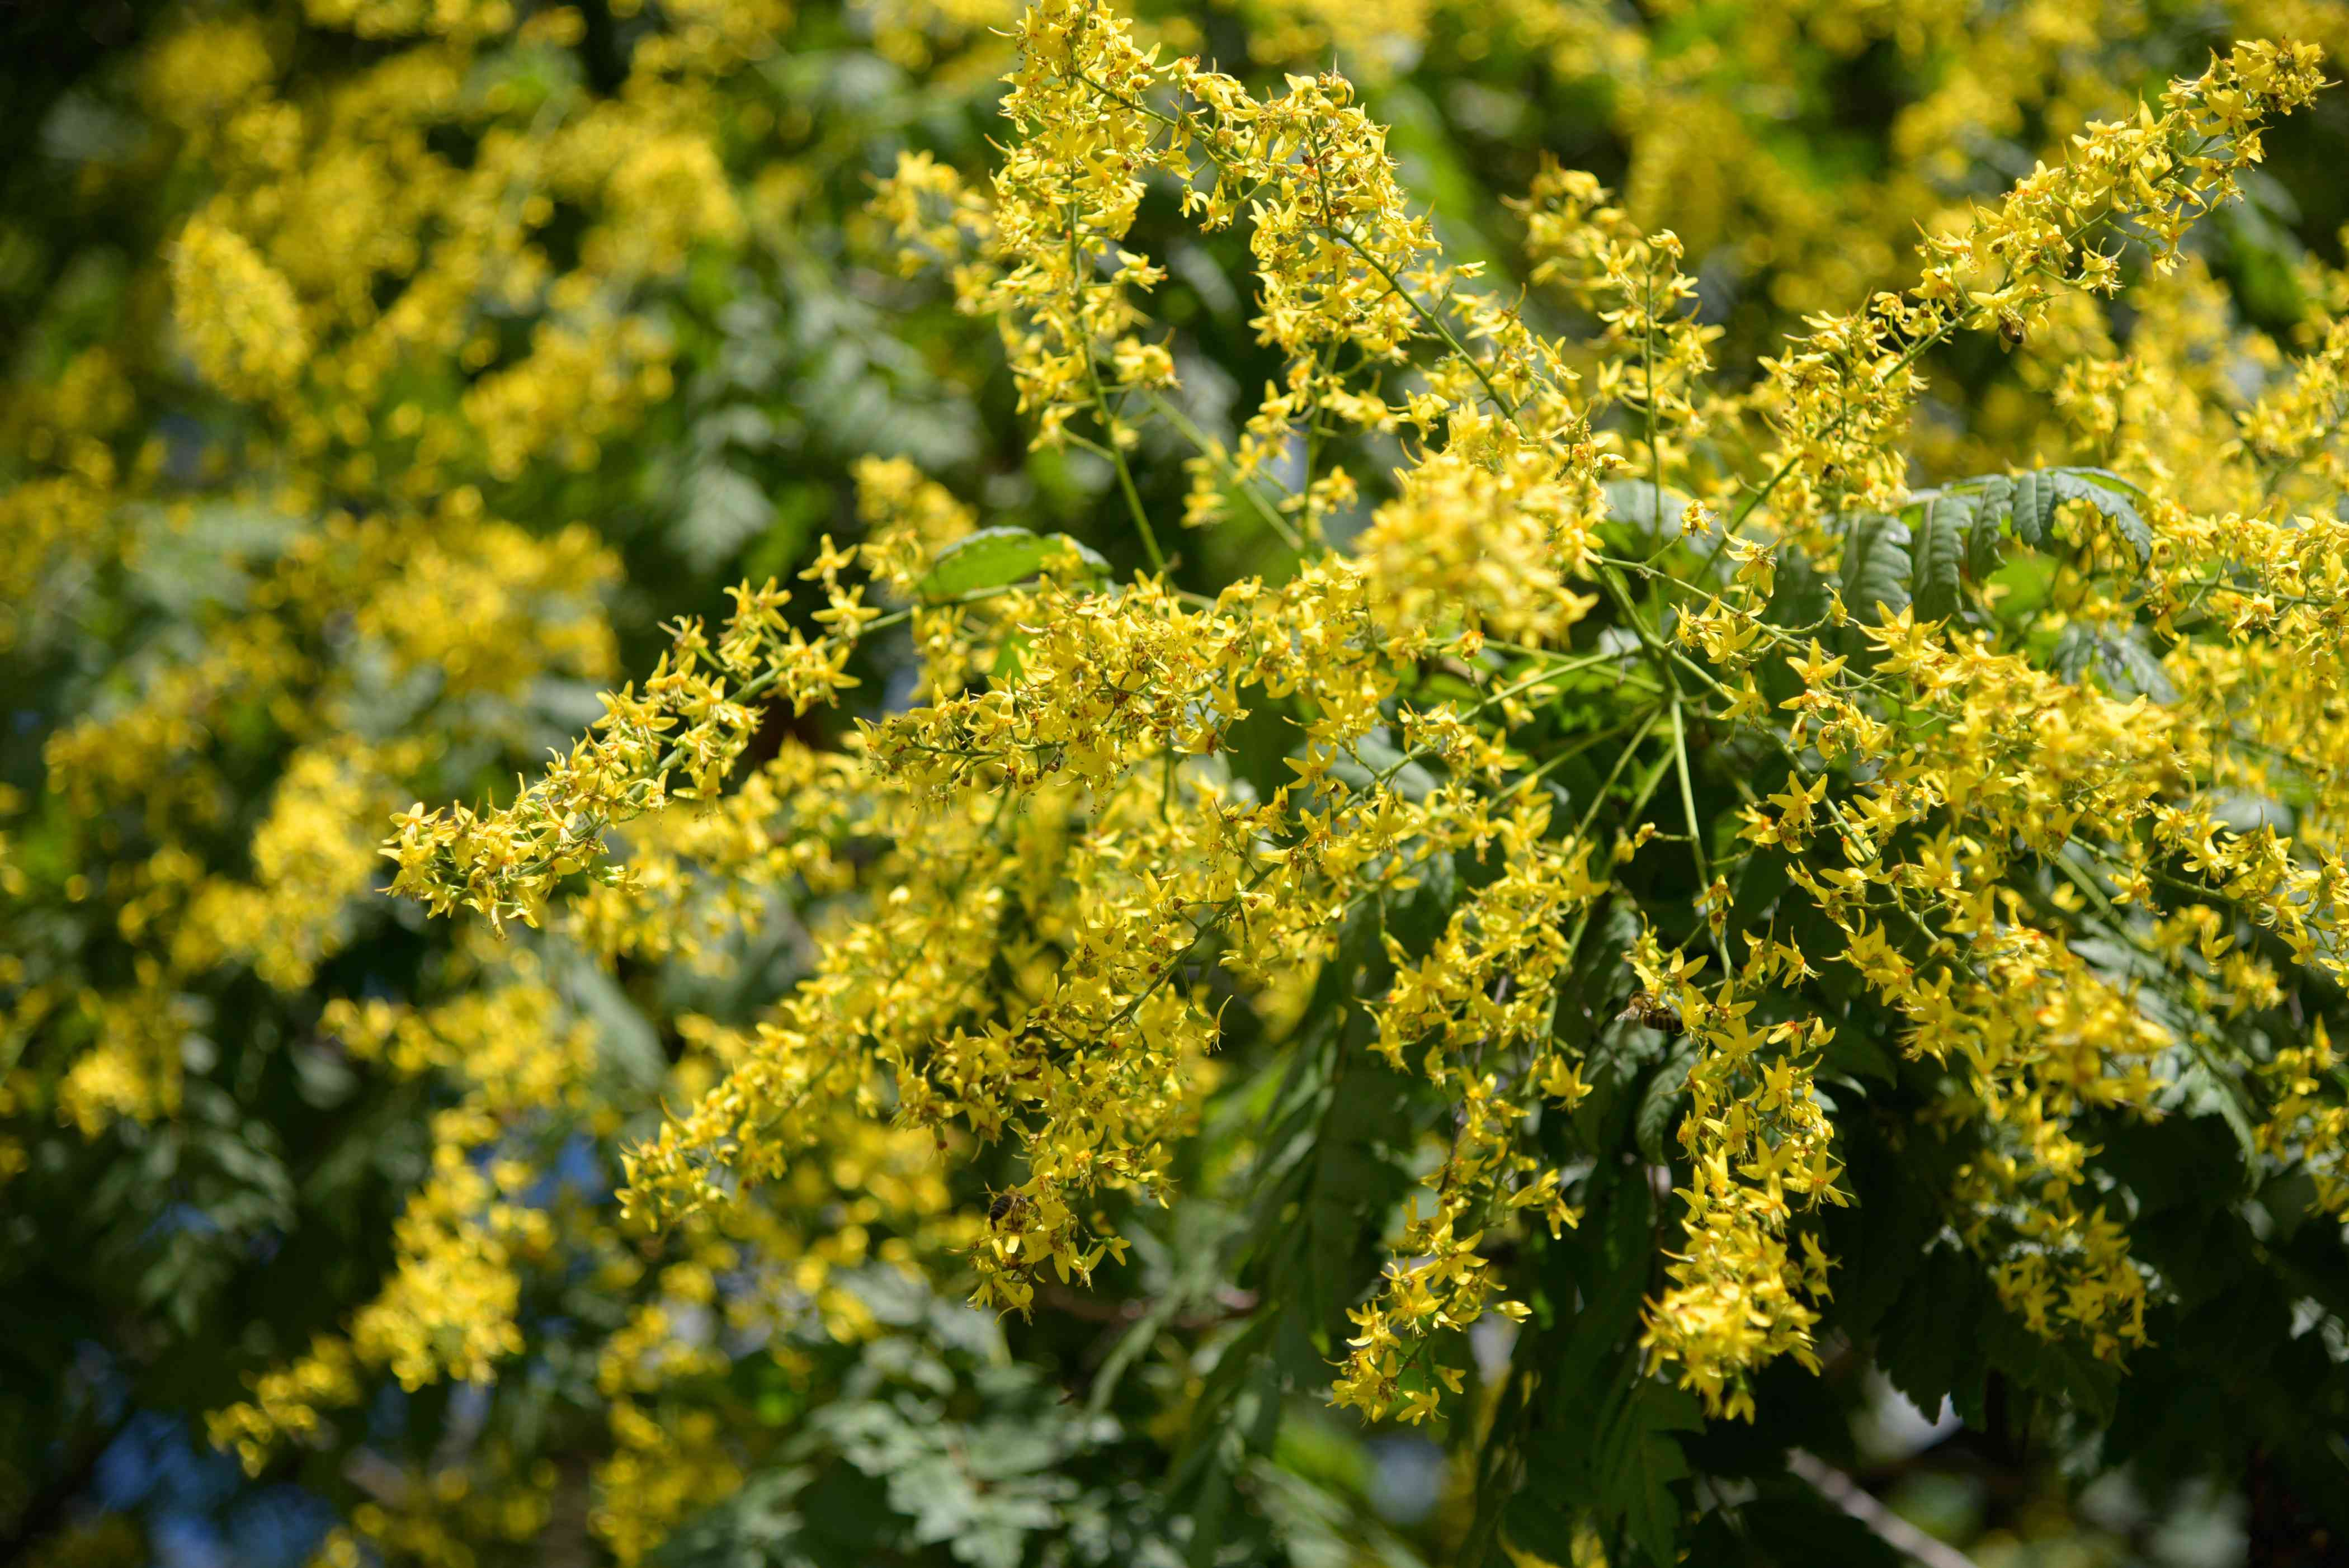 Chinese flame tree branch with small yellow flowers clustered on thin stems closeup